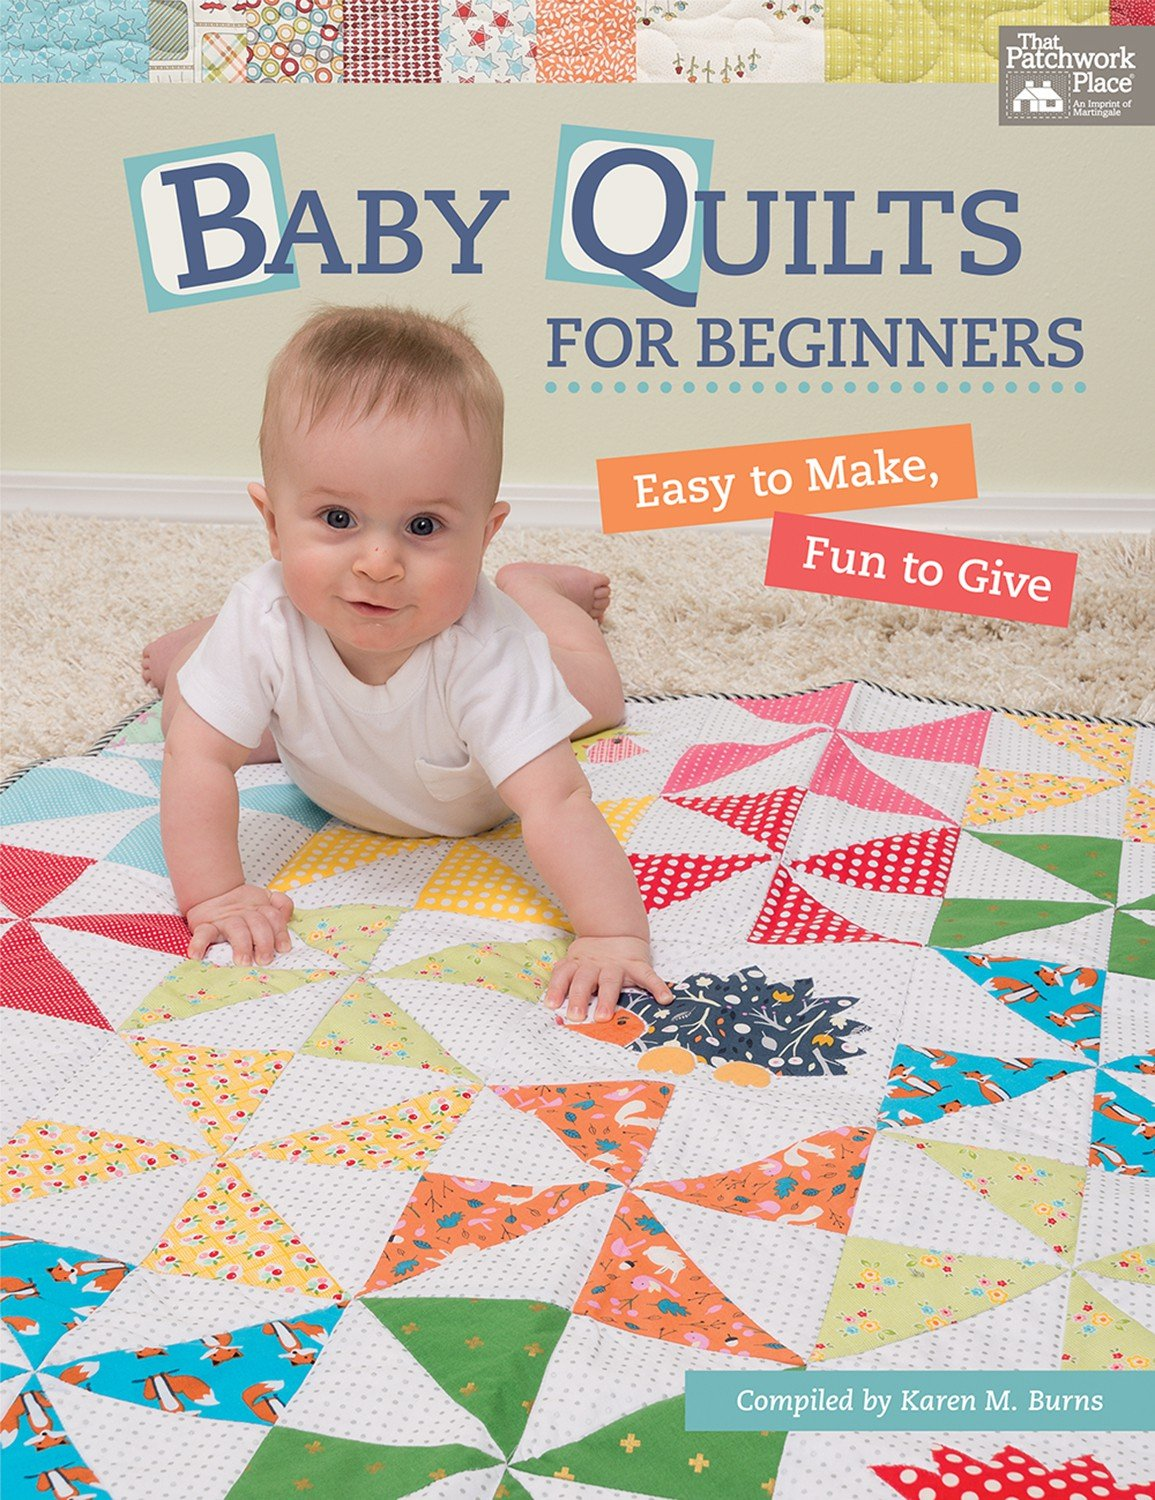 Baby Quilts For Beginners Quilt Books from That Patchwork Place